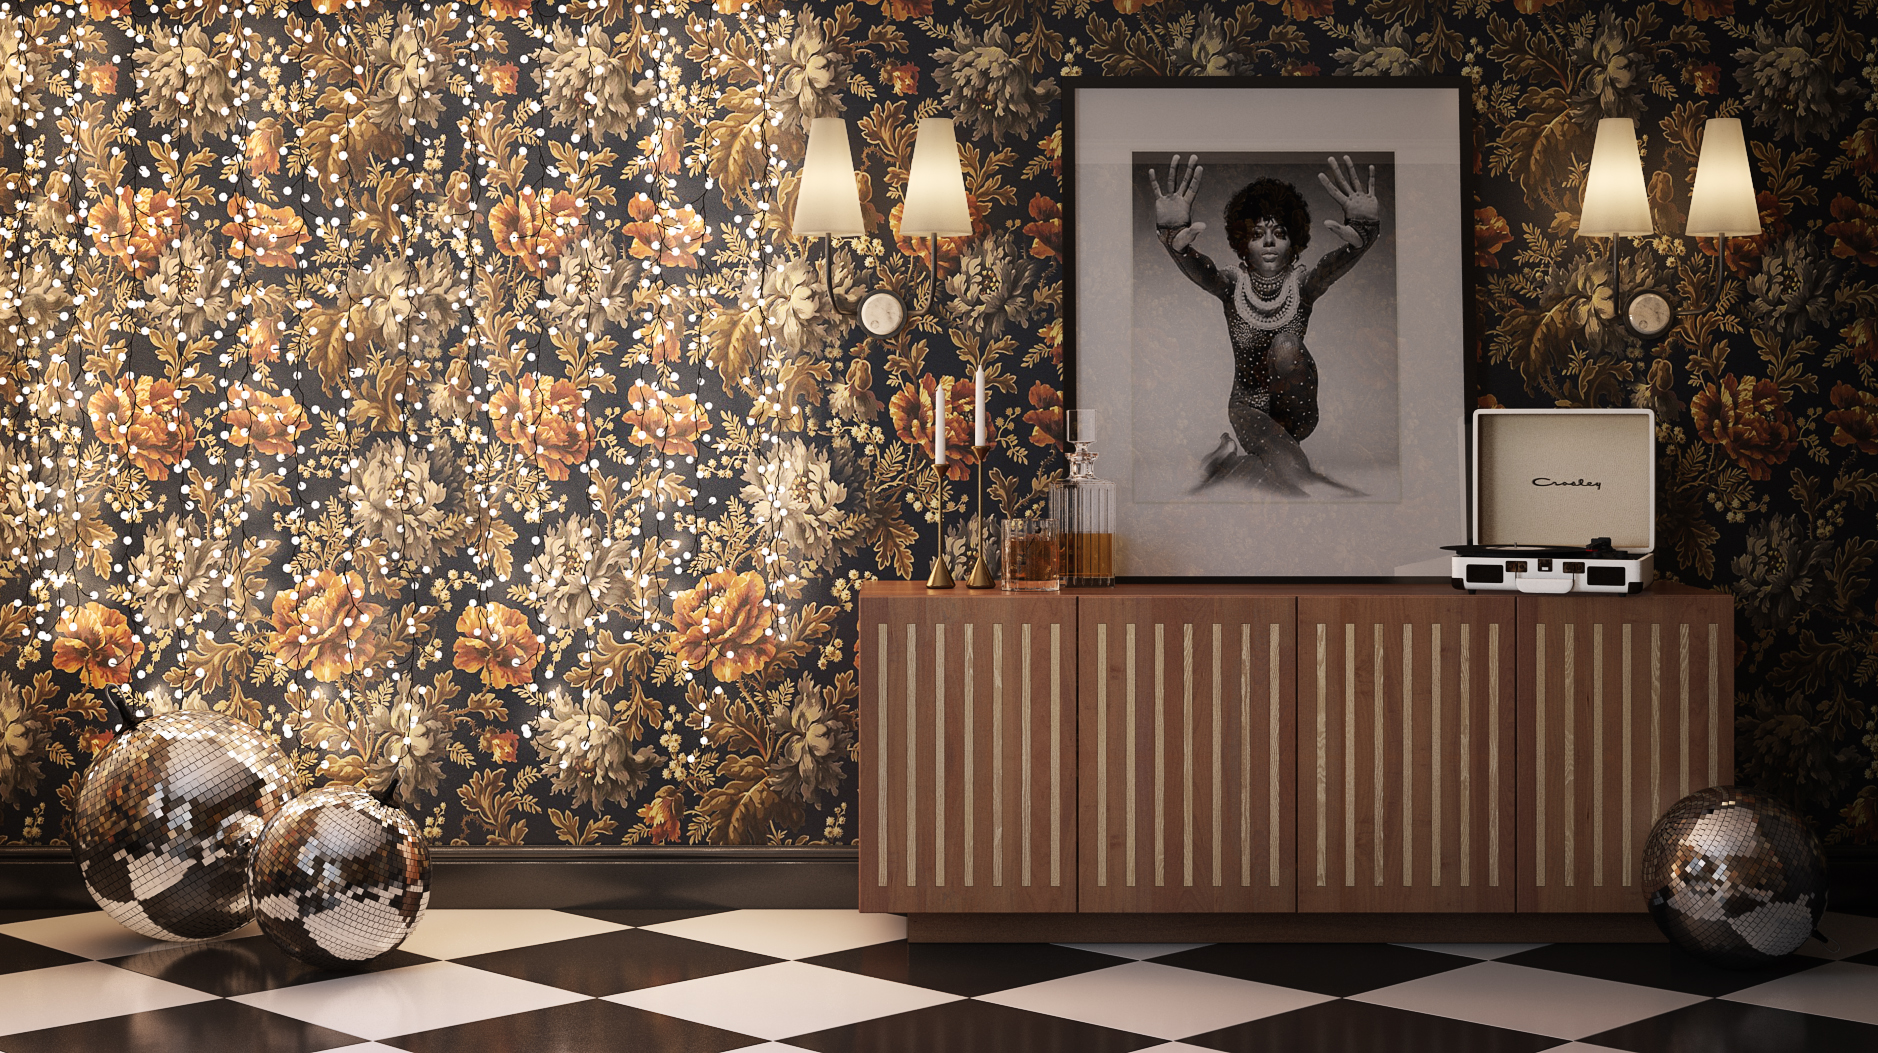 The interior of a fancy room with floral wallpaper, checkered floors, disco balls and a liquor cabinet. Provided by Lucid Immersive for its virtual LARP, The Board.